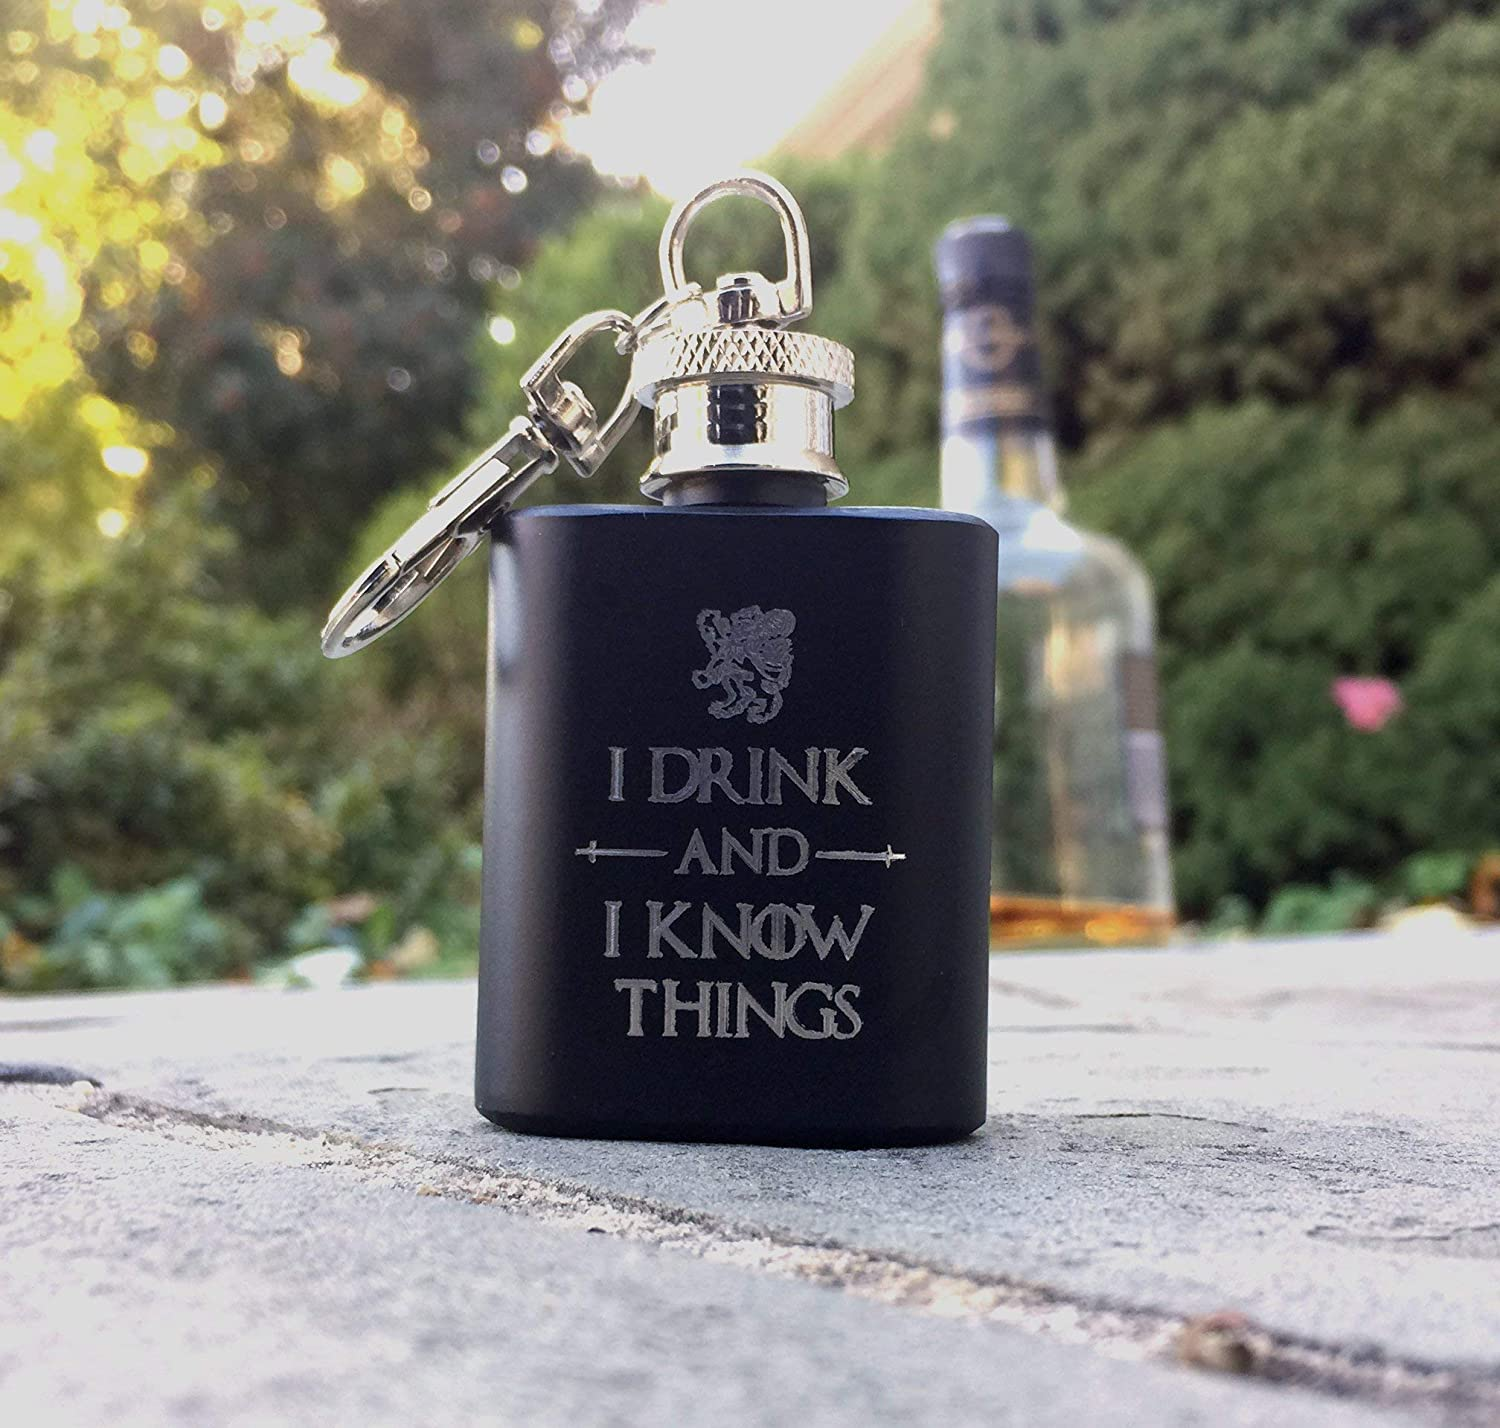 I Drink and I Know Things Mini Hip Flask Personalized /& Engraved